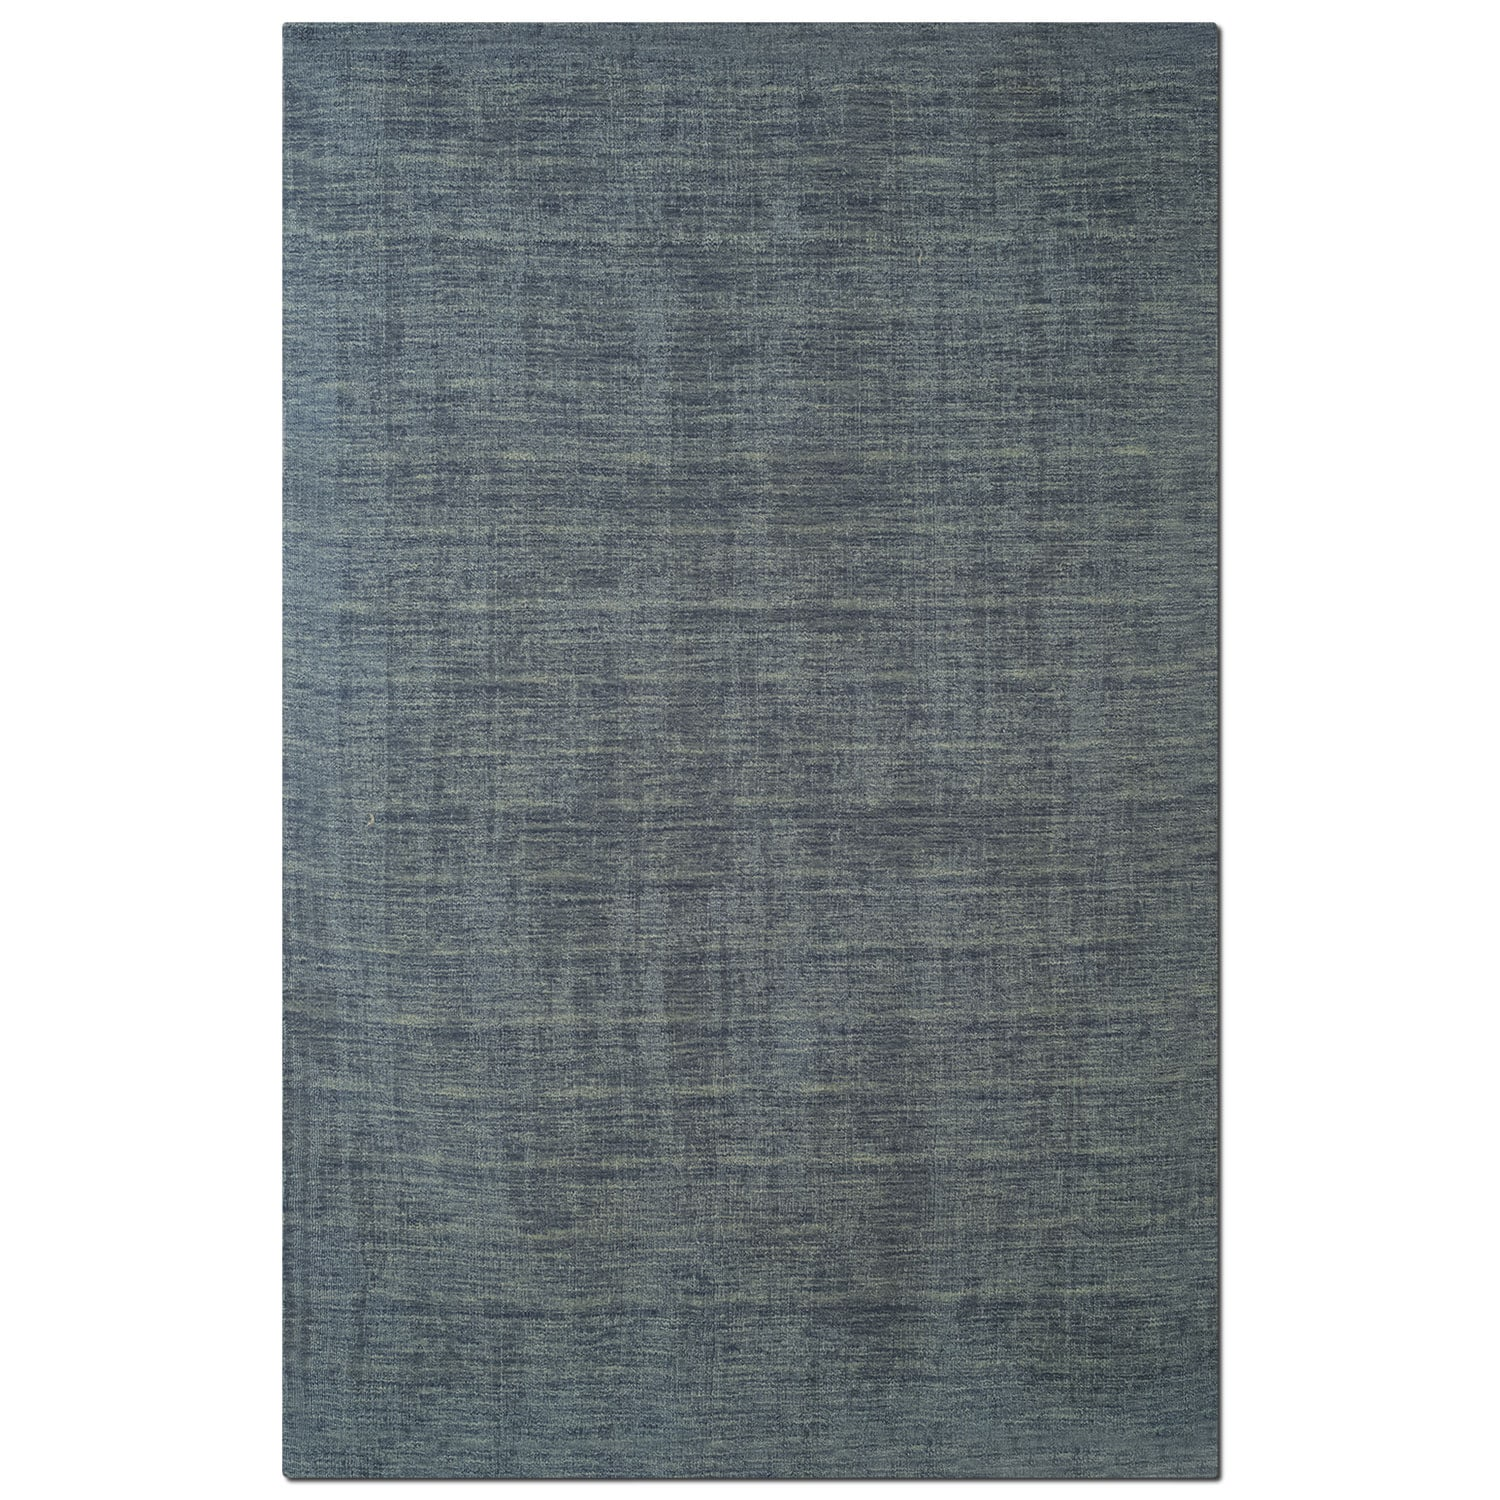 Rugs - Basics 5' x 8' Area Rug - Gray and Blue